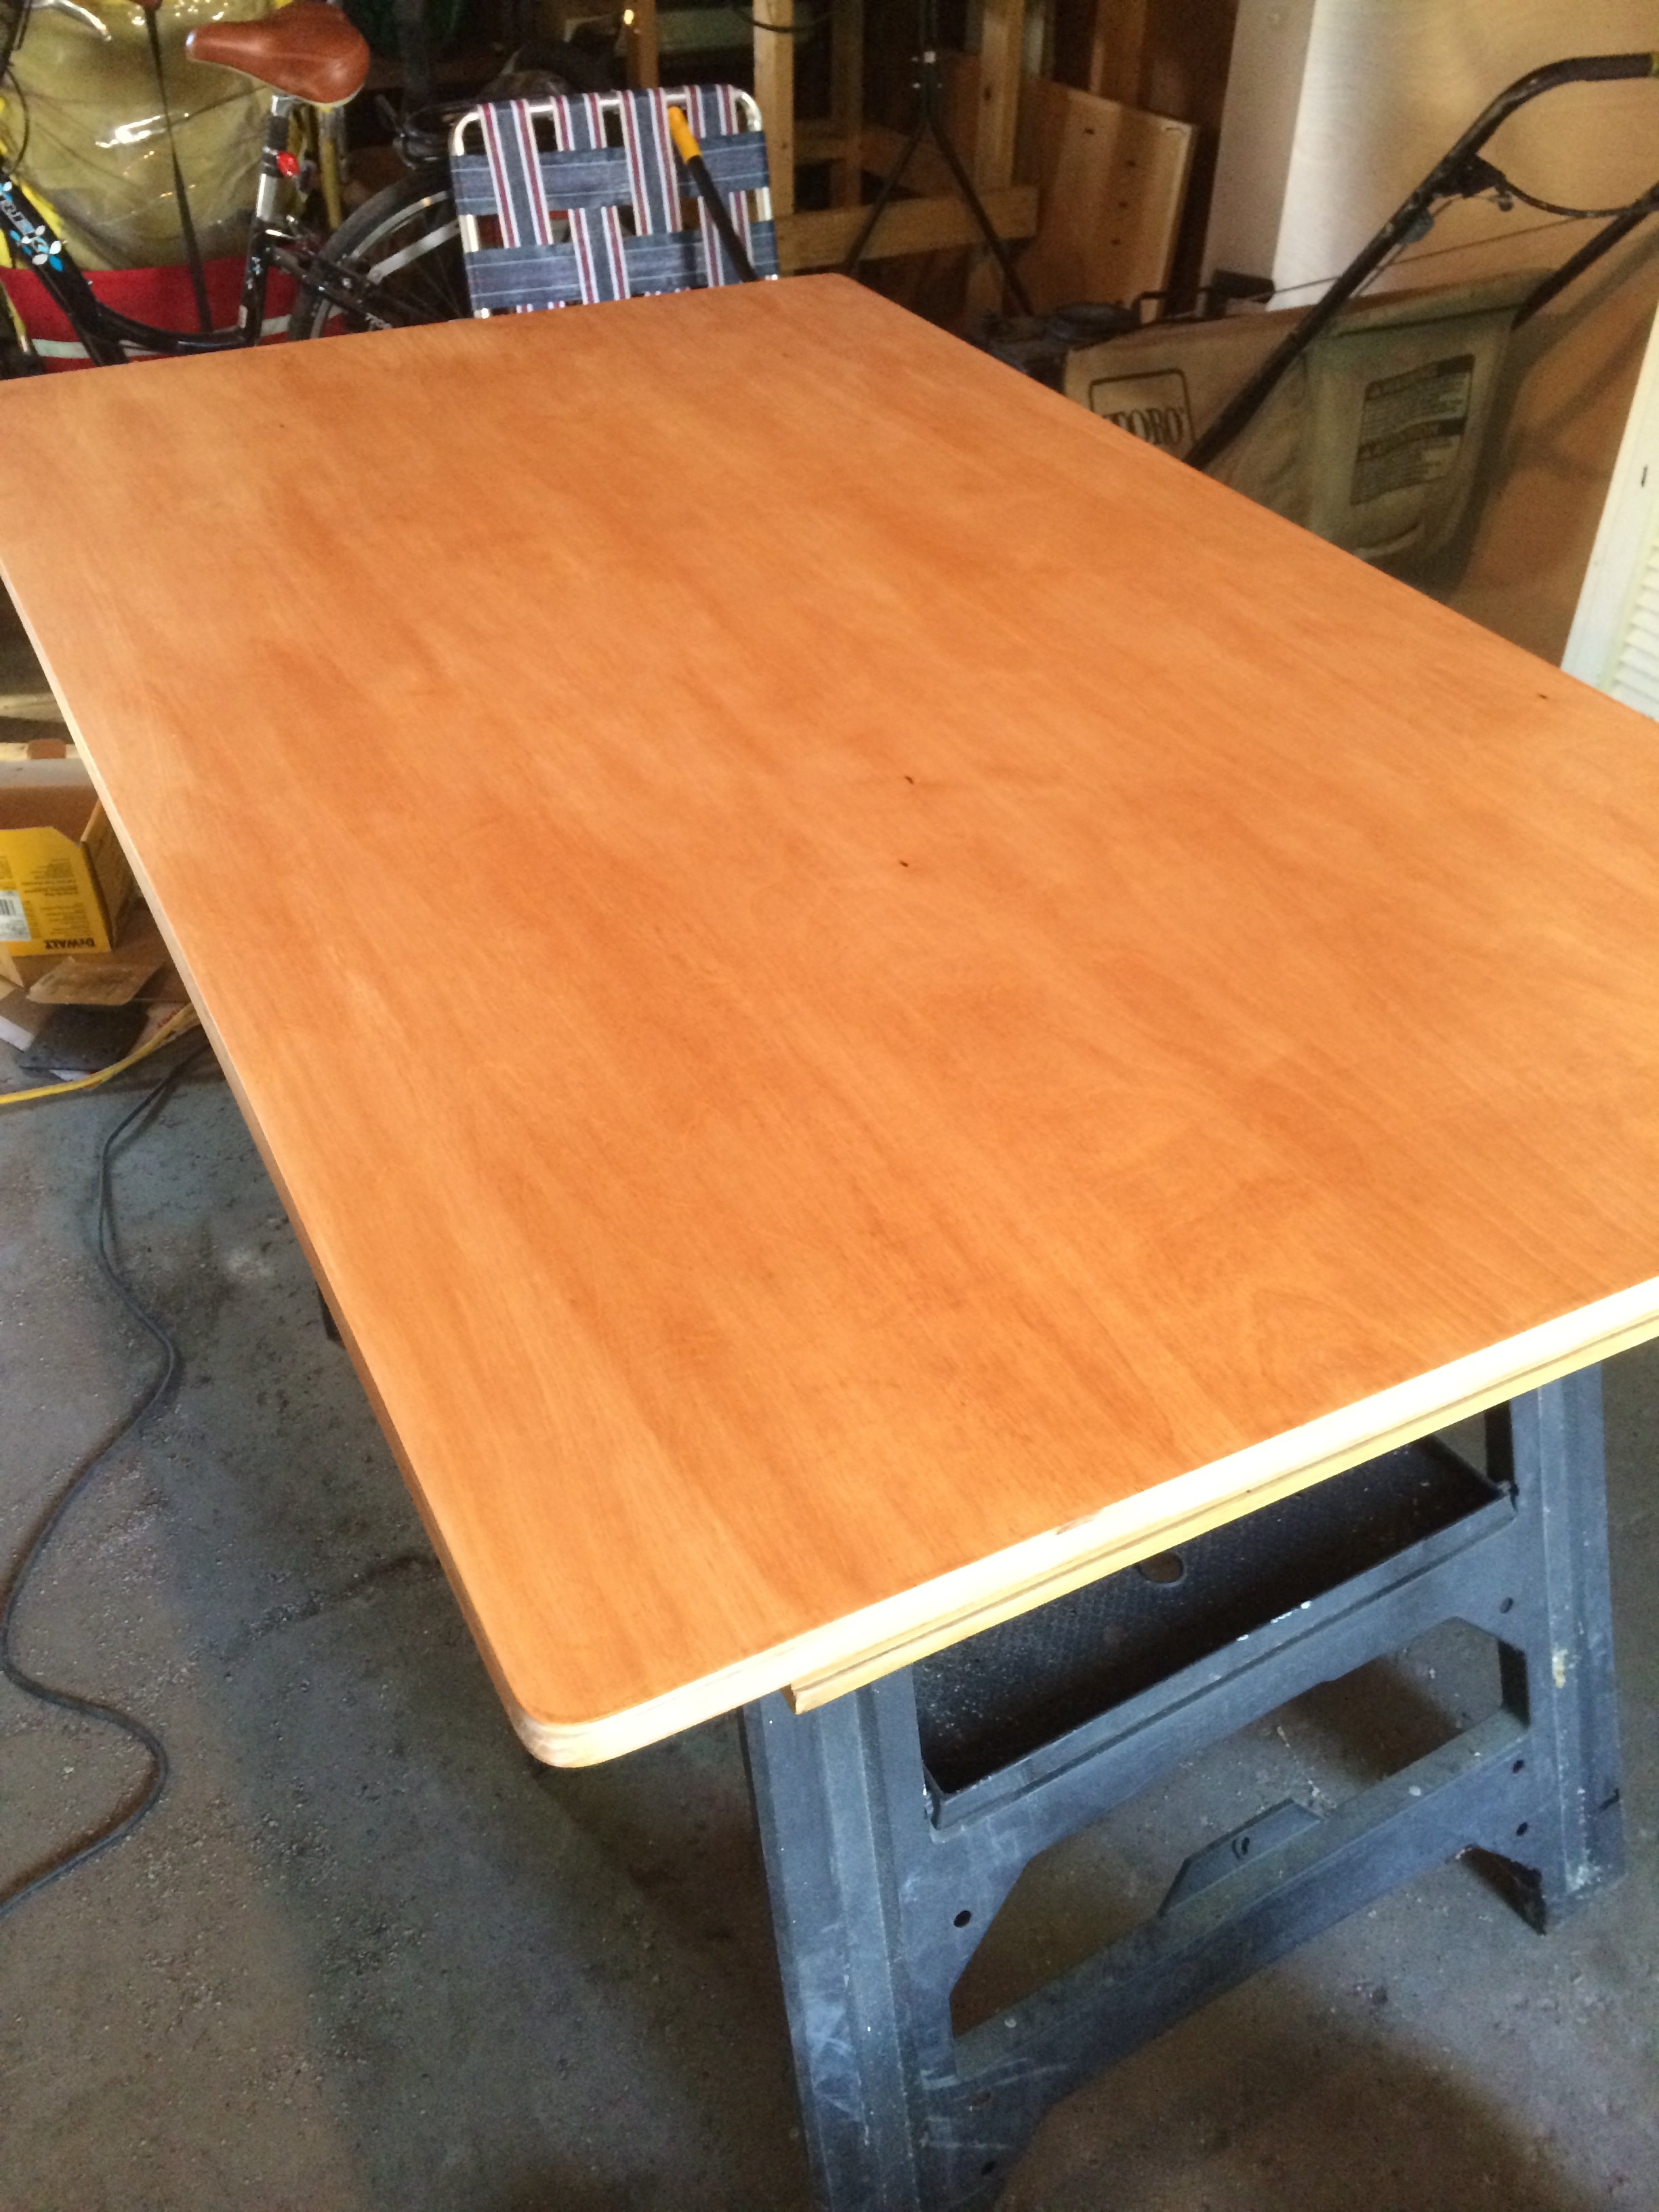 After one coat of stain